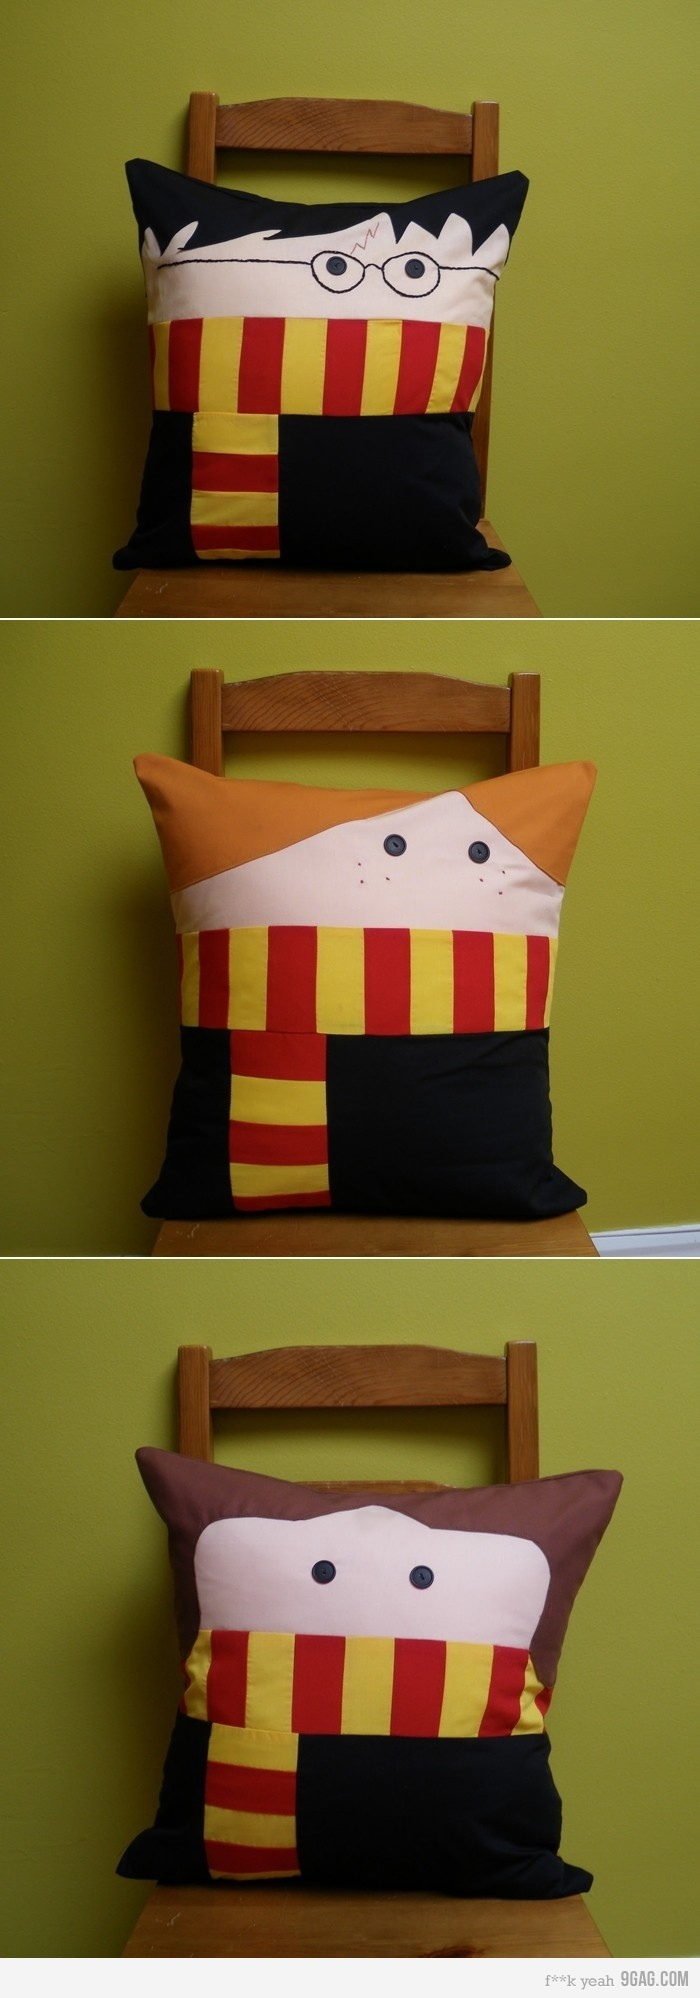 Harry Potter Pillows: Ideas, Sewing, Cushions, Kids, Things, Throw Pillows, Ron And Hermione, Harry Potter Pillows, Crafts